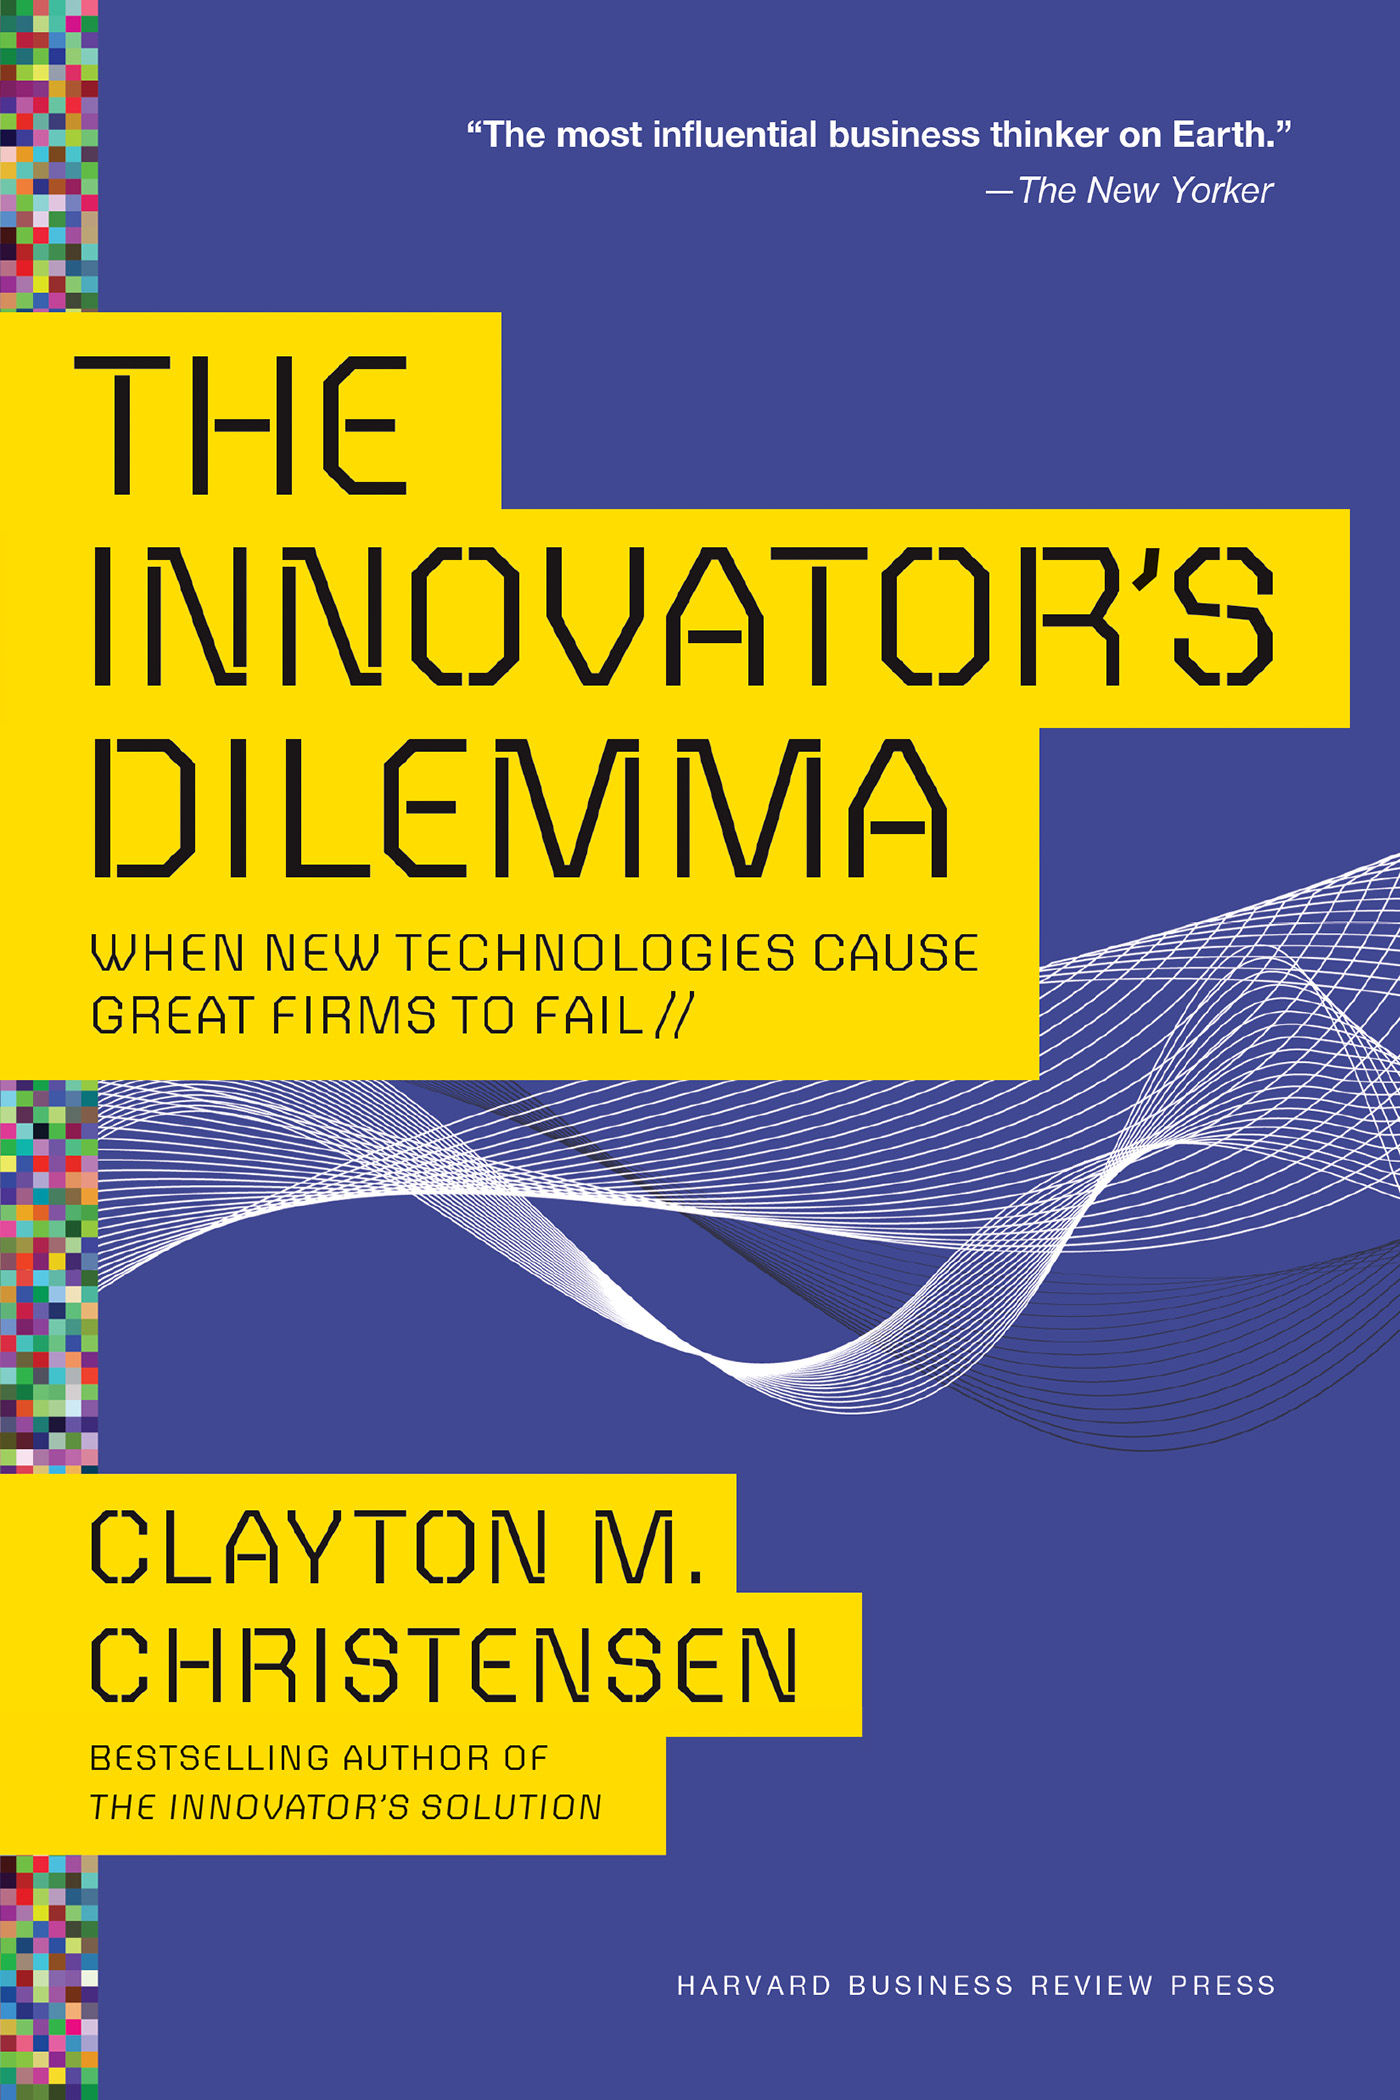 Download Ebook The Innovator's Dilemma by Clayton M. Christensen Pdf